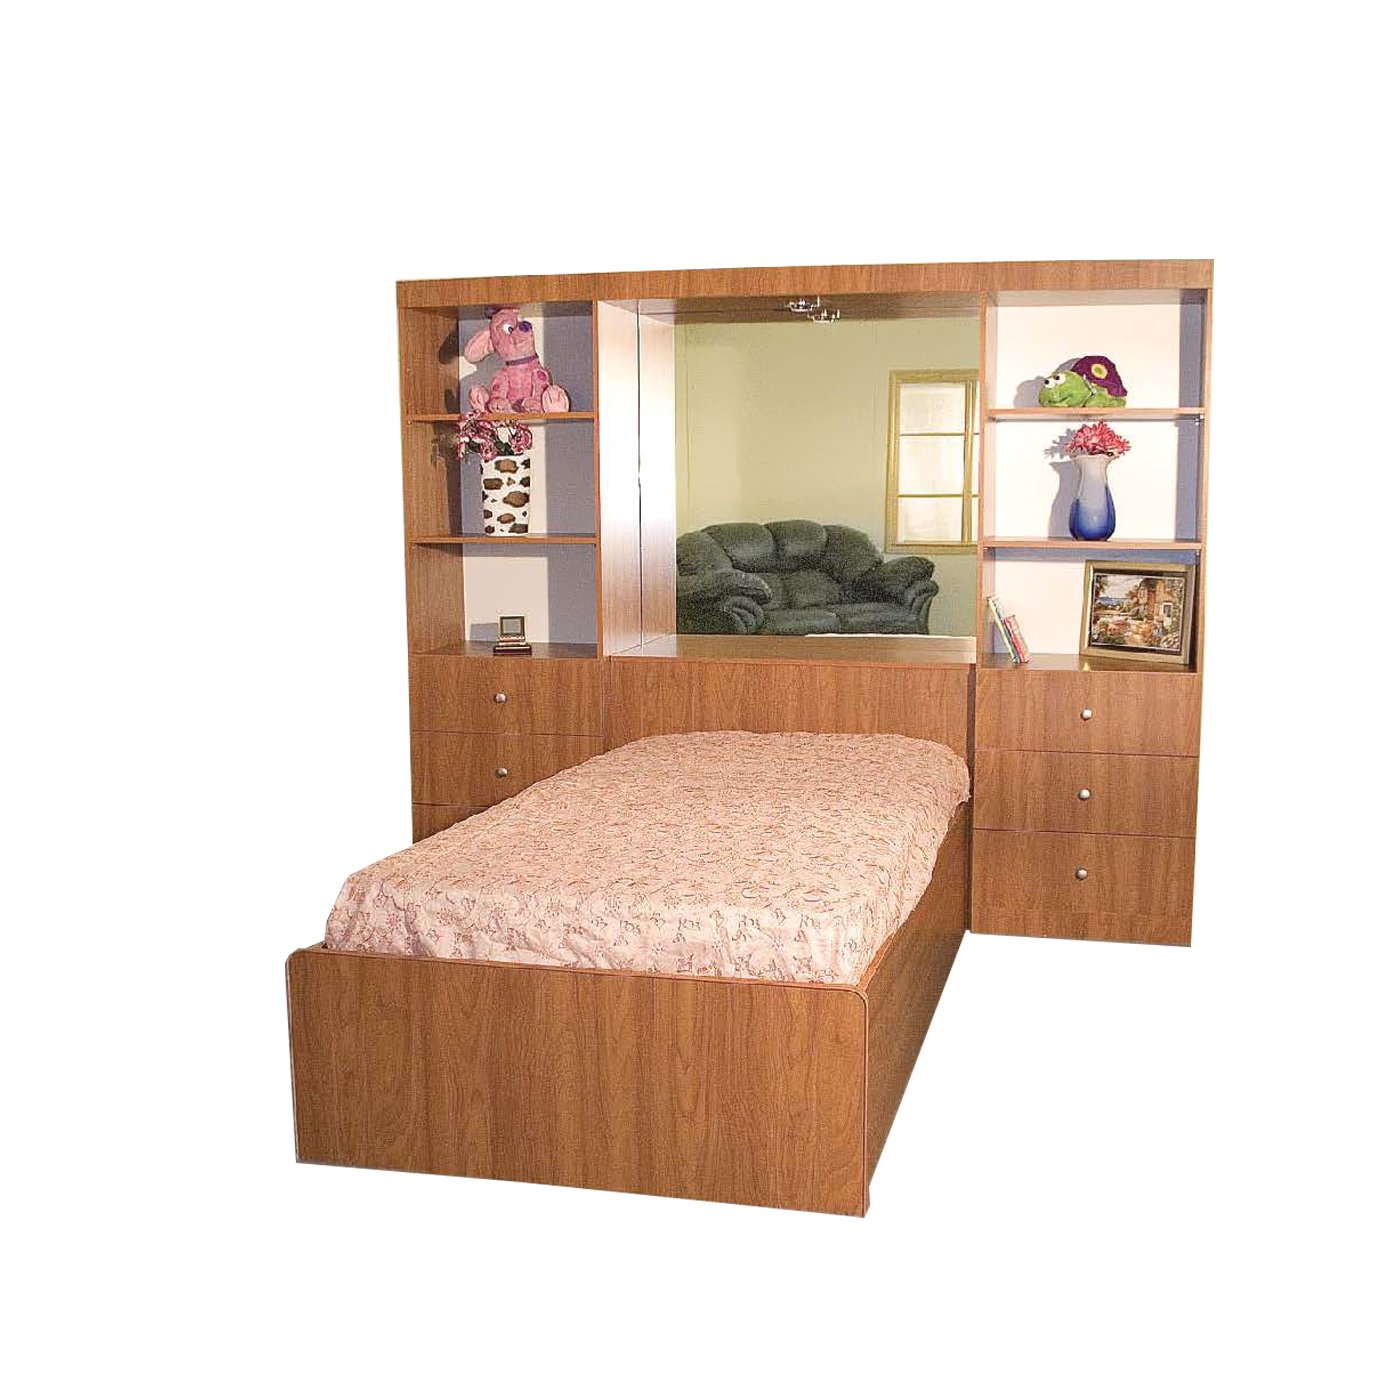 M-10 Brown Wooden Bed Wall by Central Furniture Factory